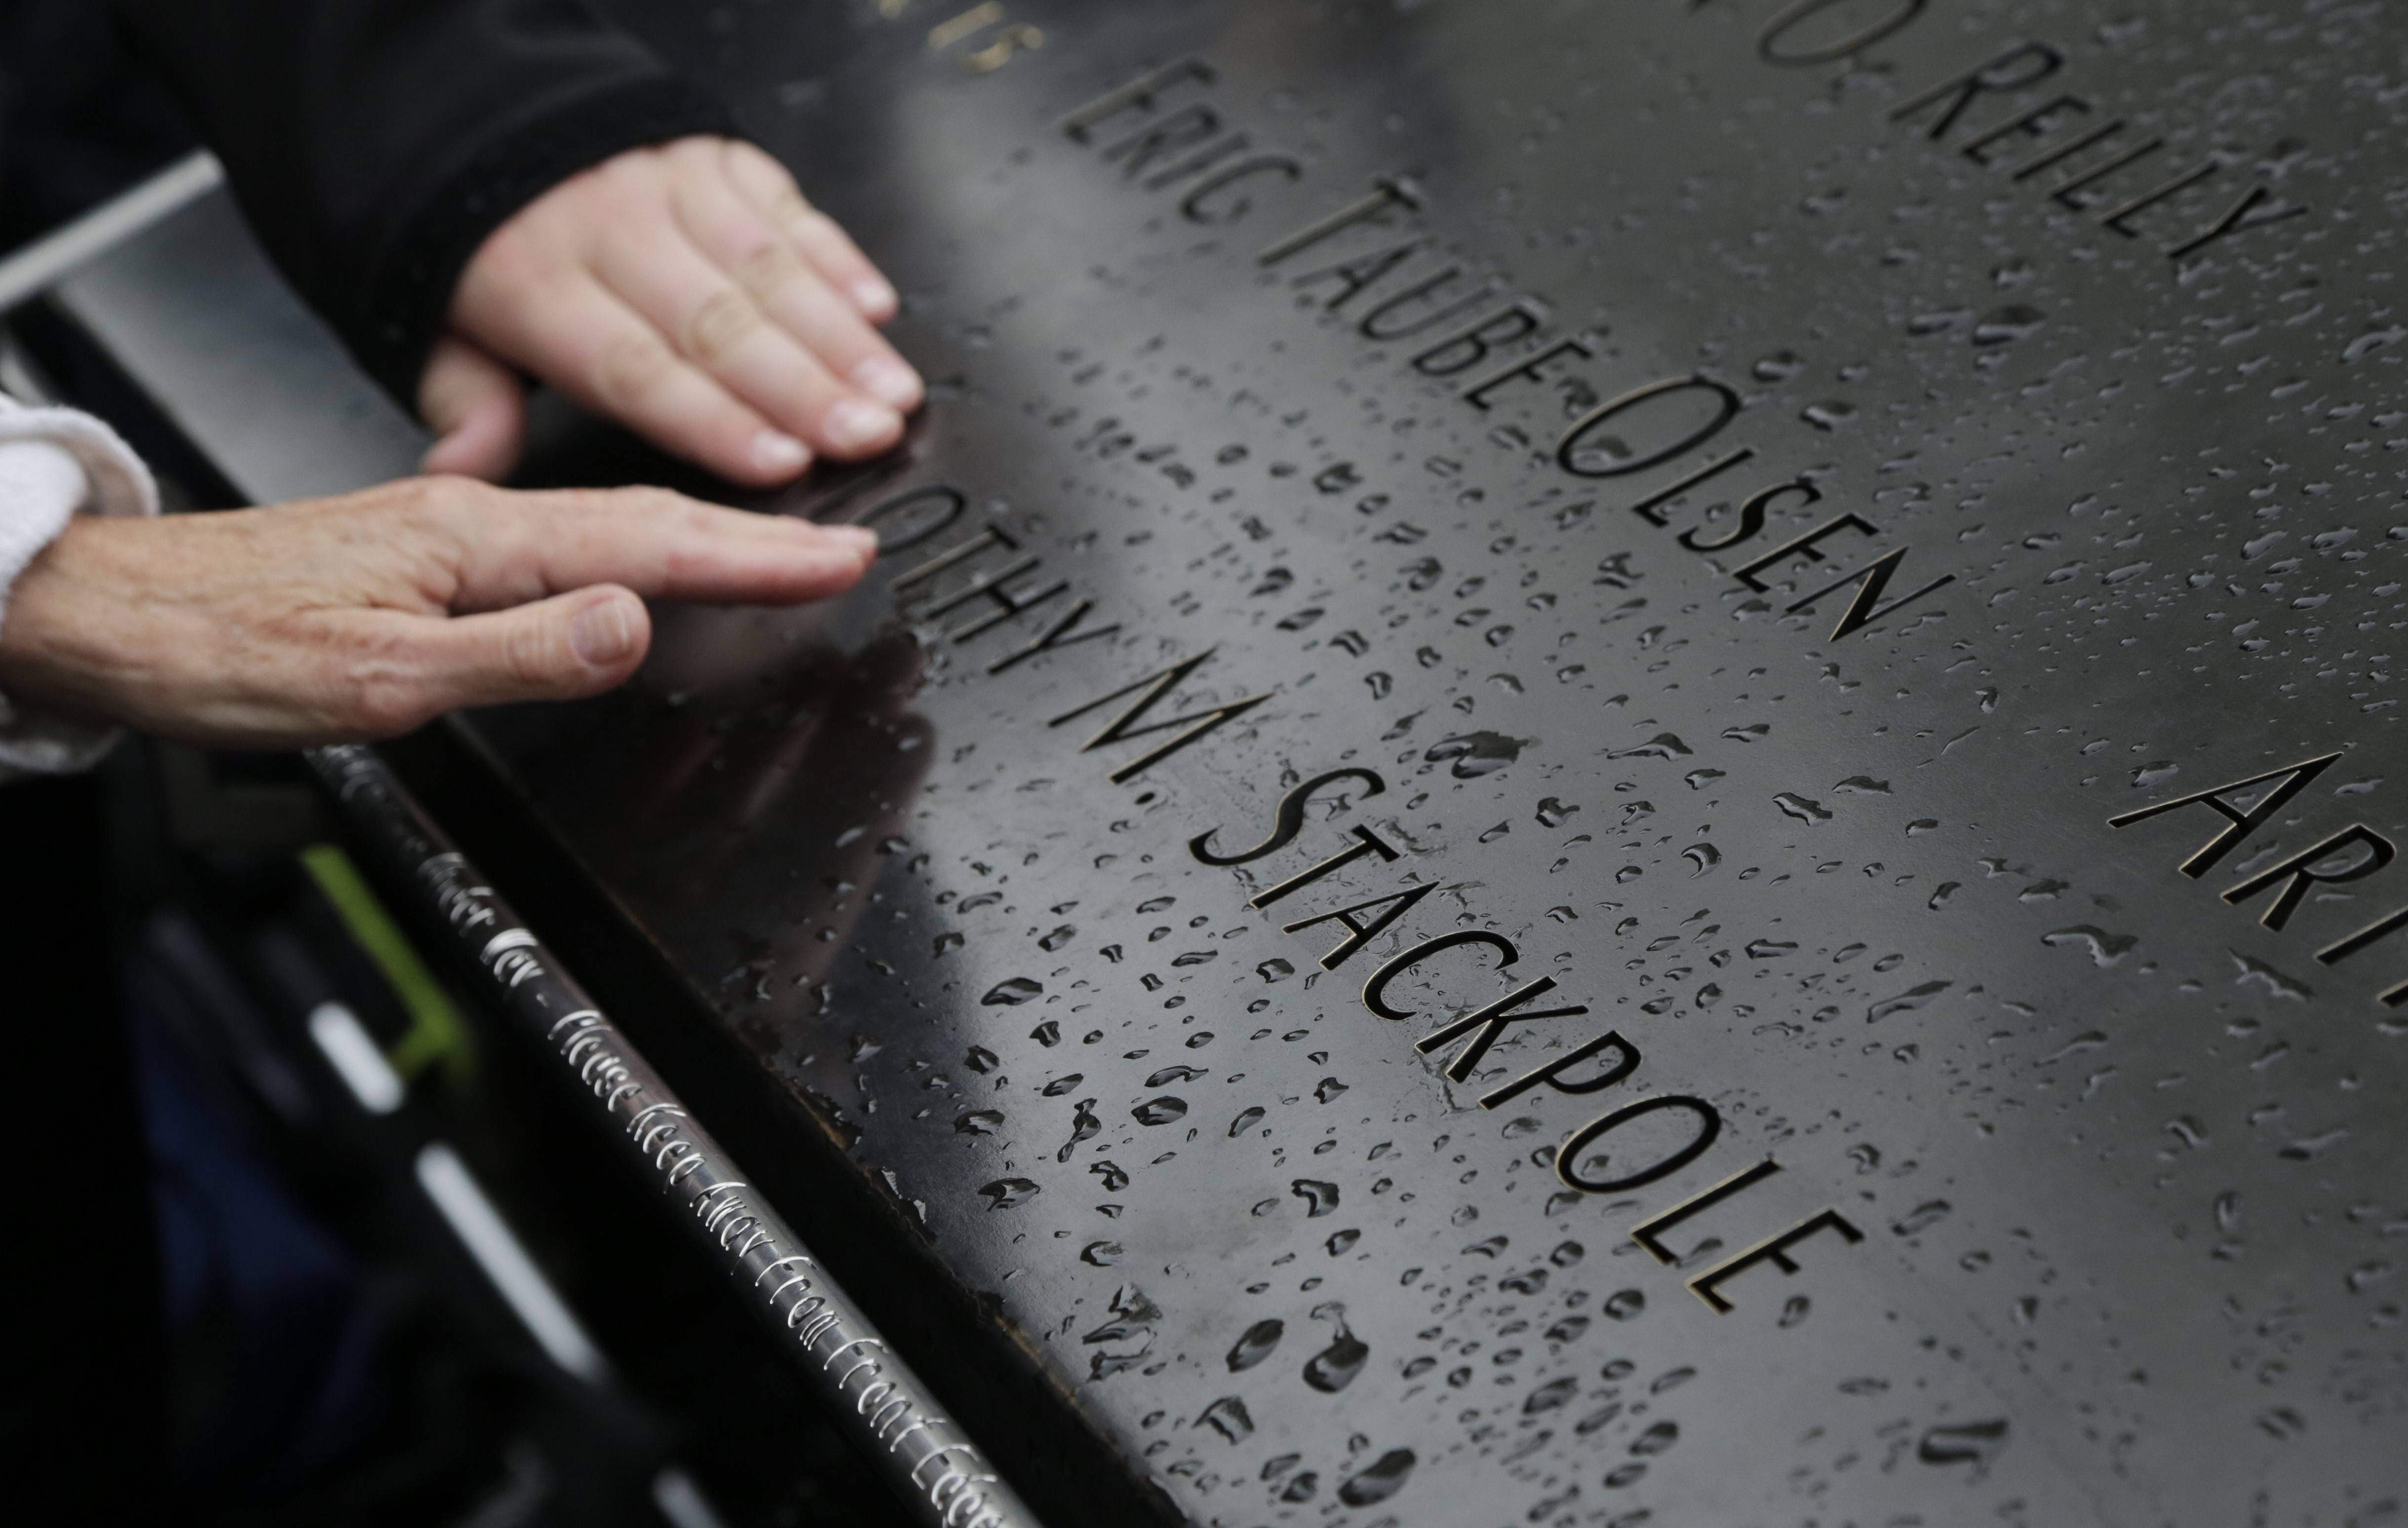 Visitors touch the engraved name of a victim of the Sept. 11, 2001, attacks at the National September 11 Memorial & Museum in New York. The memorial has been visited by nearly 15 million people since it opened three years ago on the footprints of the twin towers.